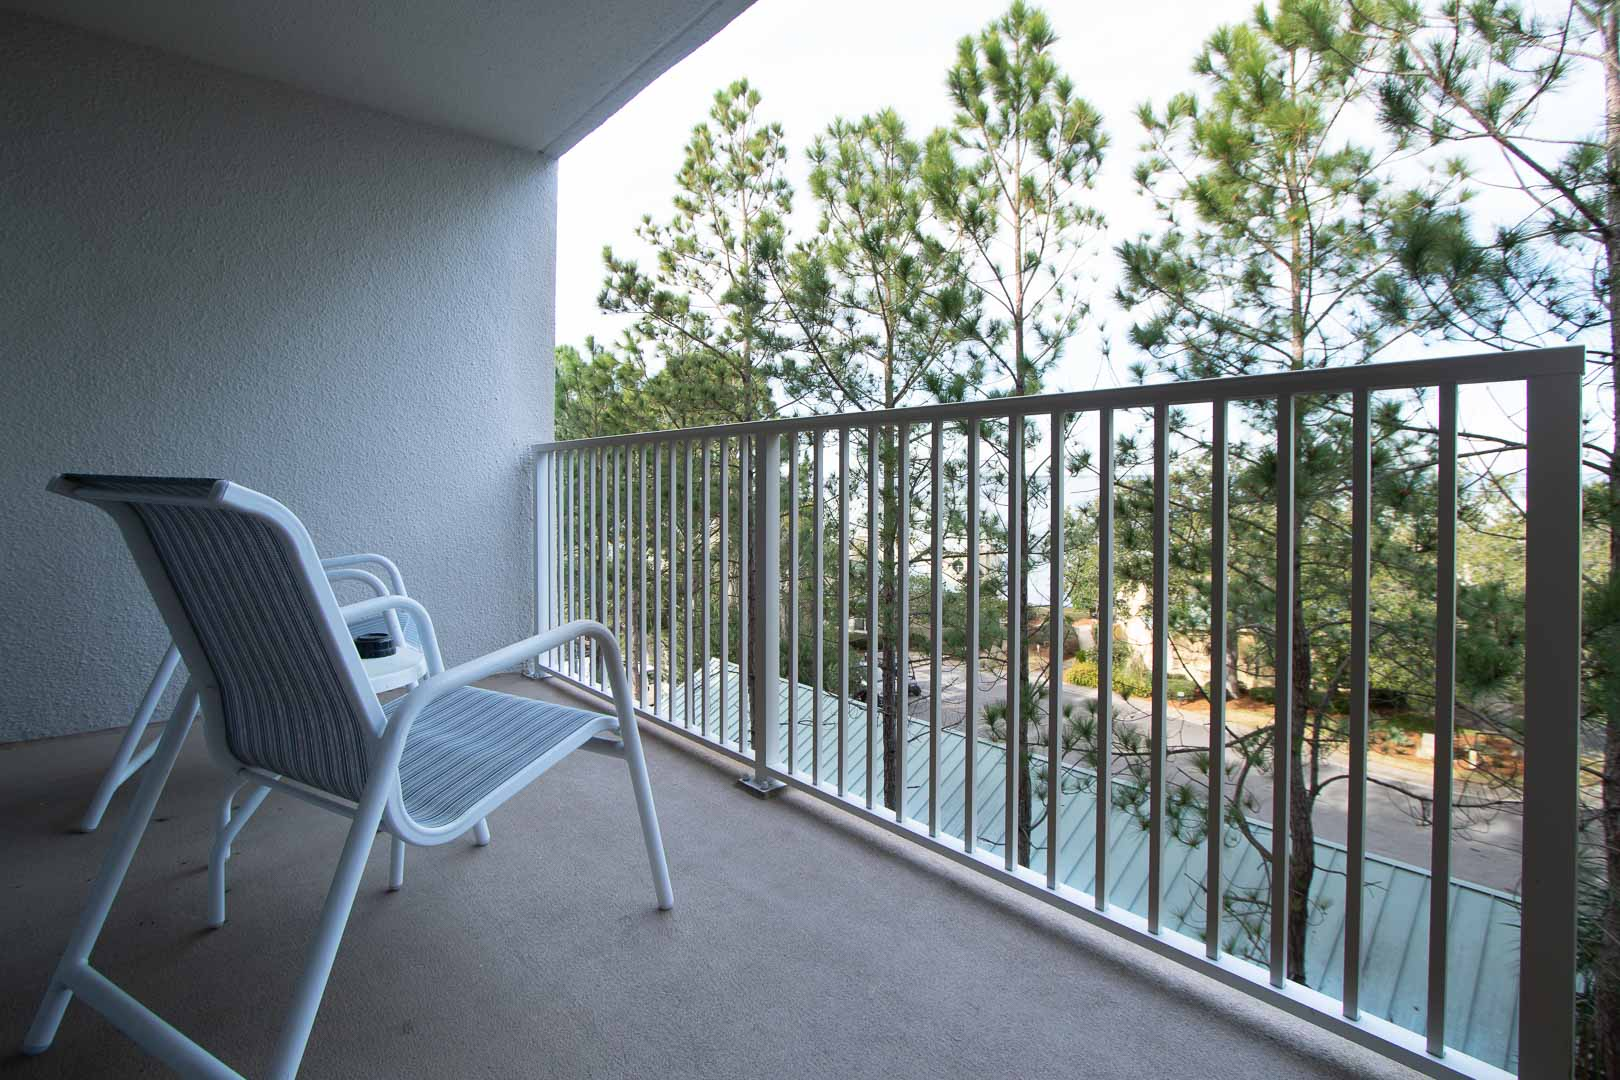 A cozy balcony view at VRI's Bay Club of Sandestin in Florida.